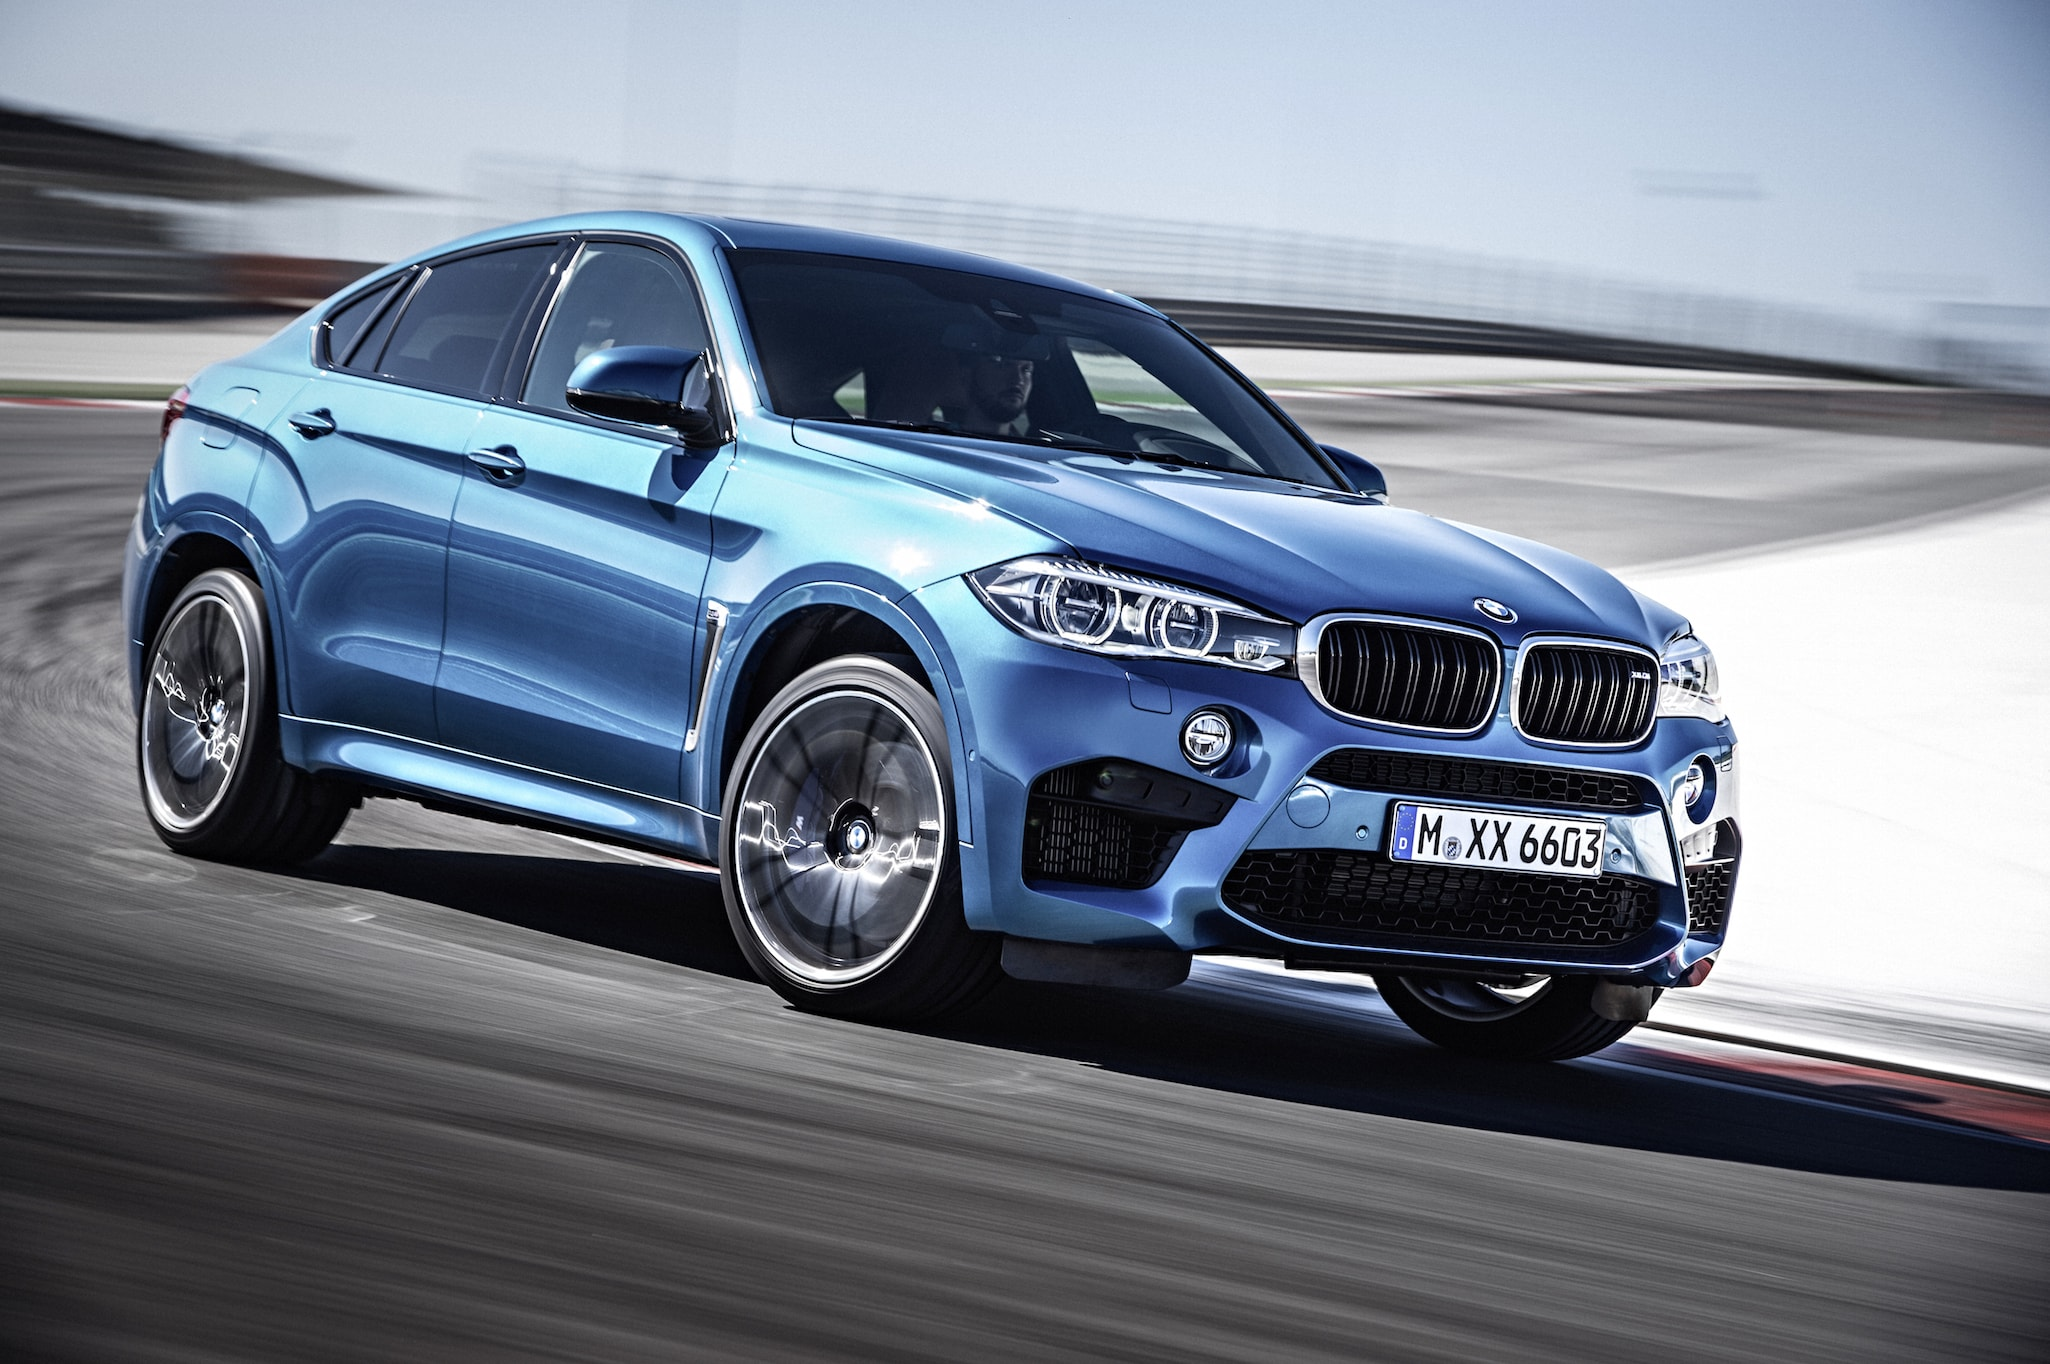 BMW X6 M (F86) Wallpapers hd